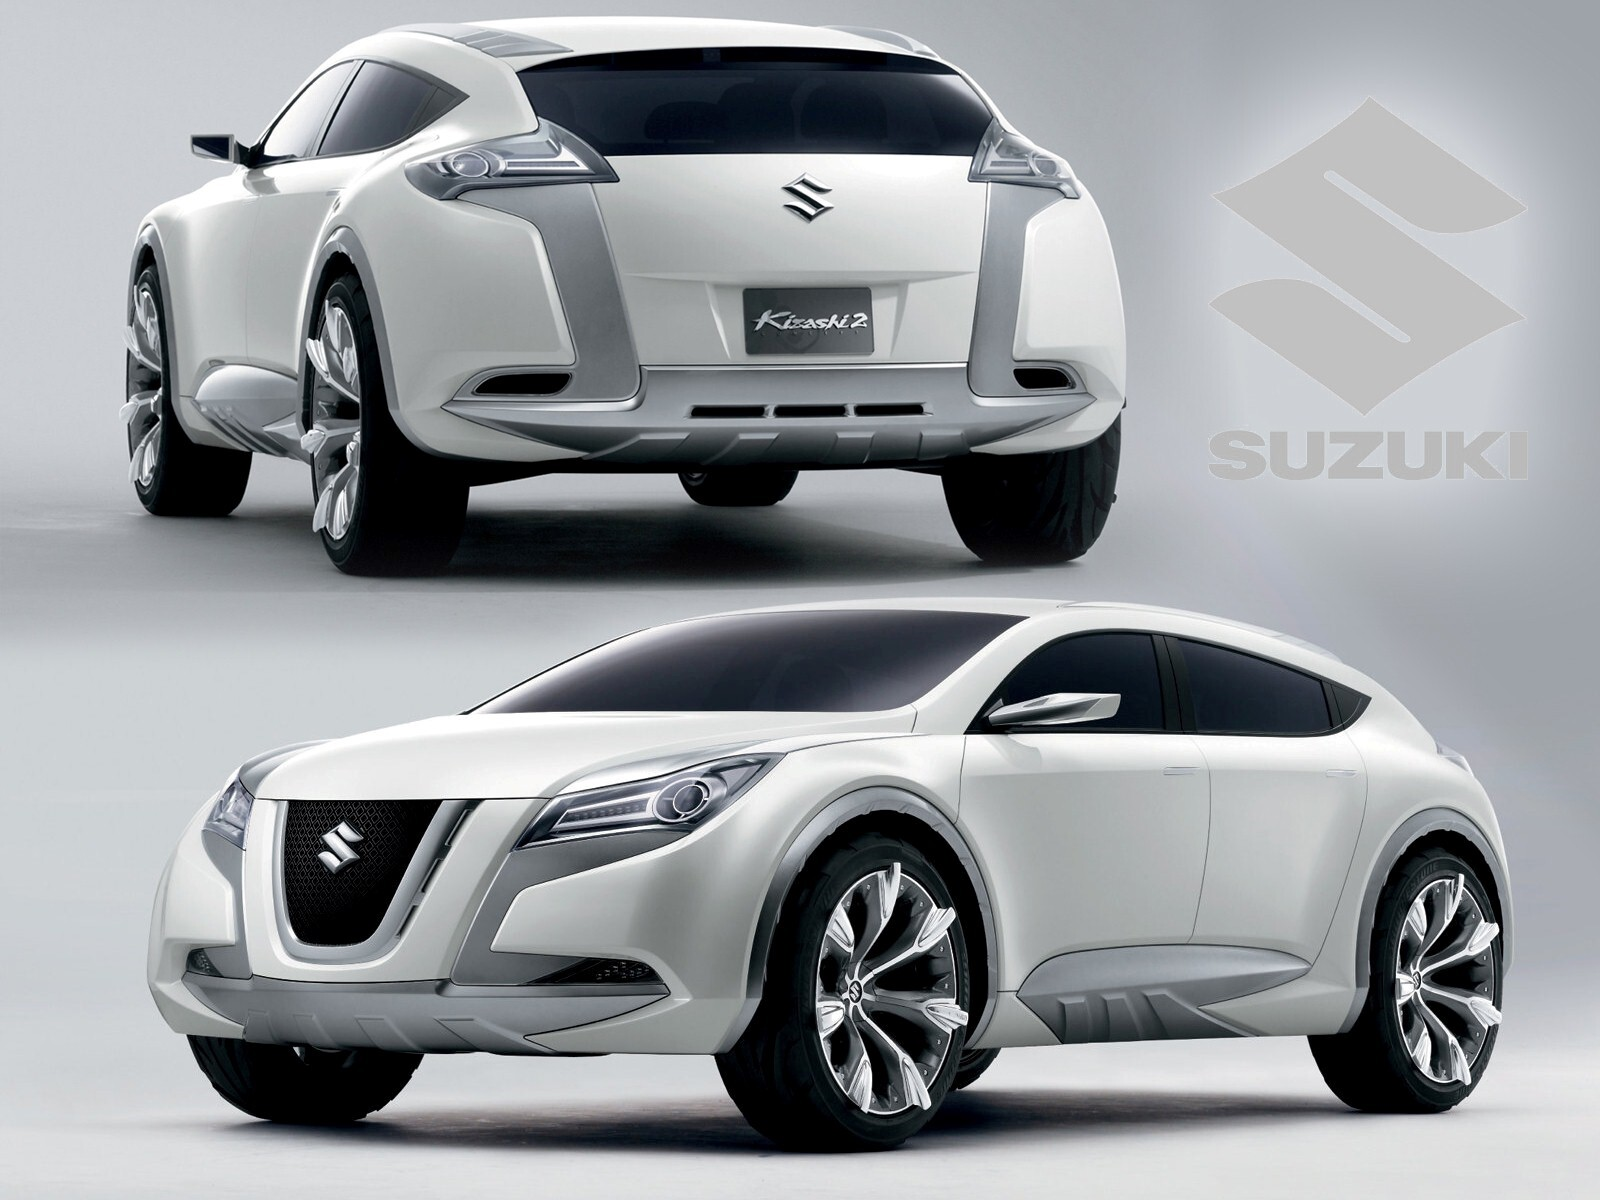 Suzuki Kizashi 2 Concept Car Hd Wallpapers